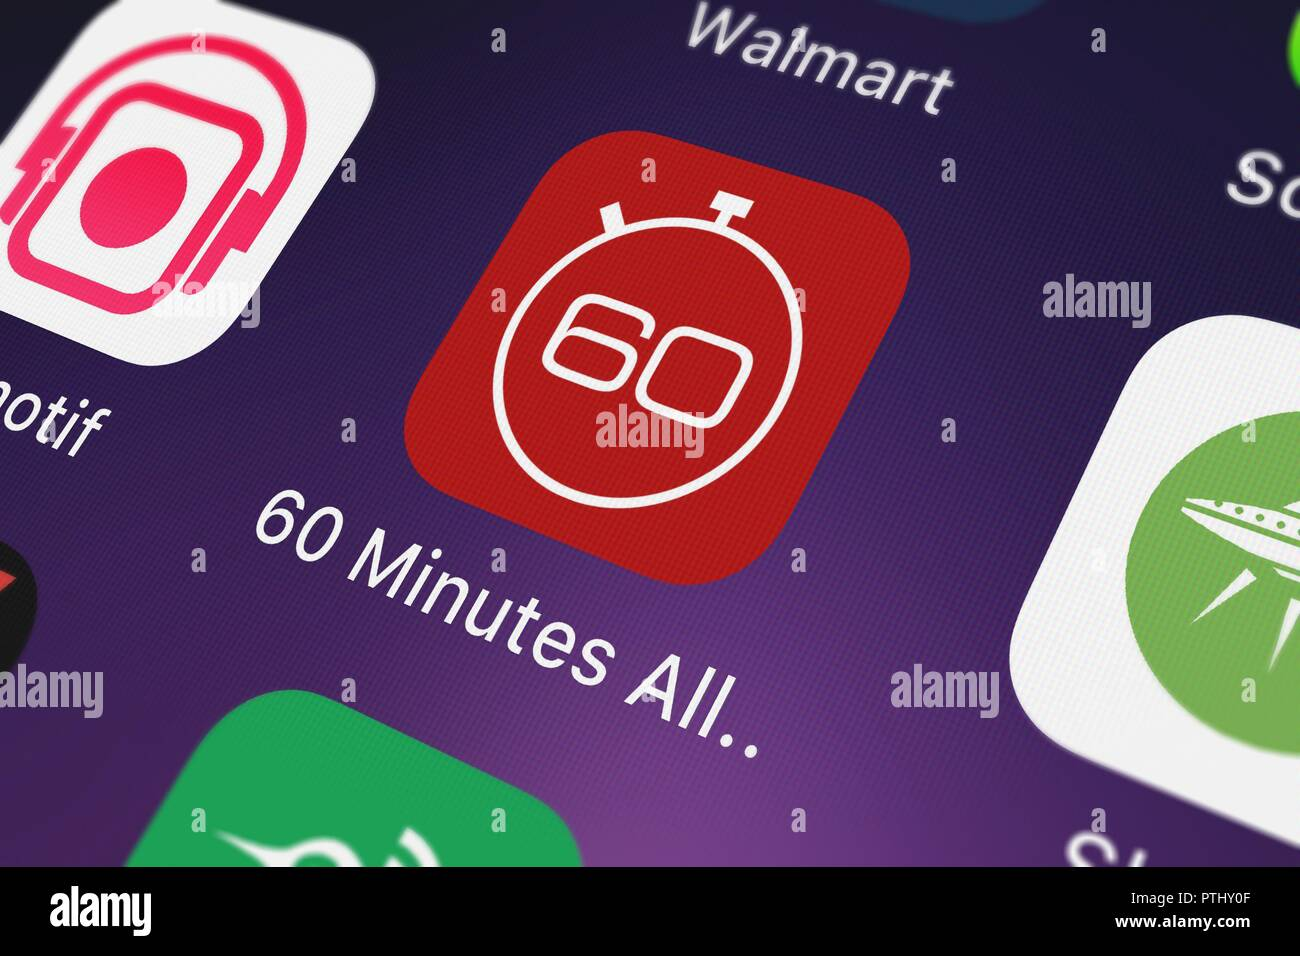 London United Kingdom October 09 2018 Close Up Sof Cbs Interactives Popular App 60 Minutes All Access